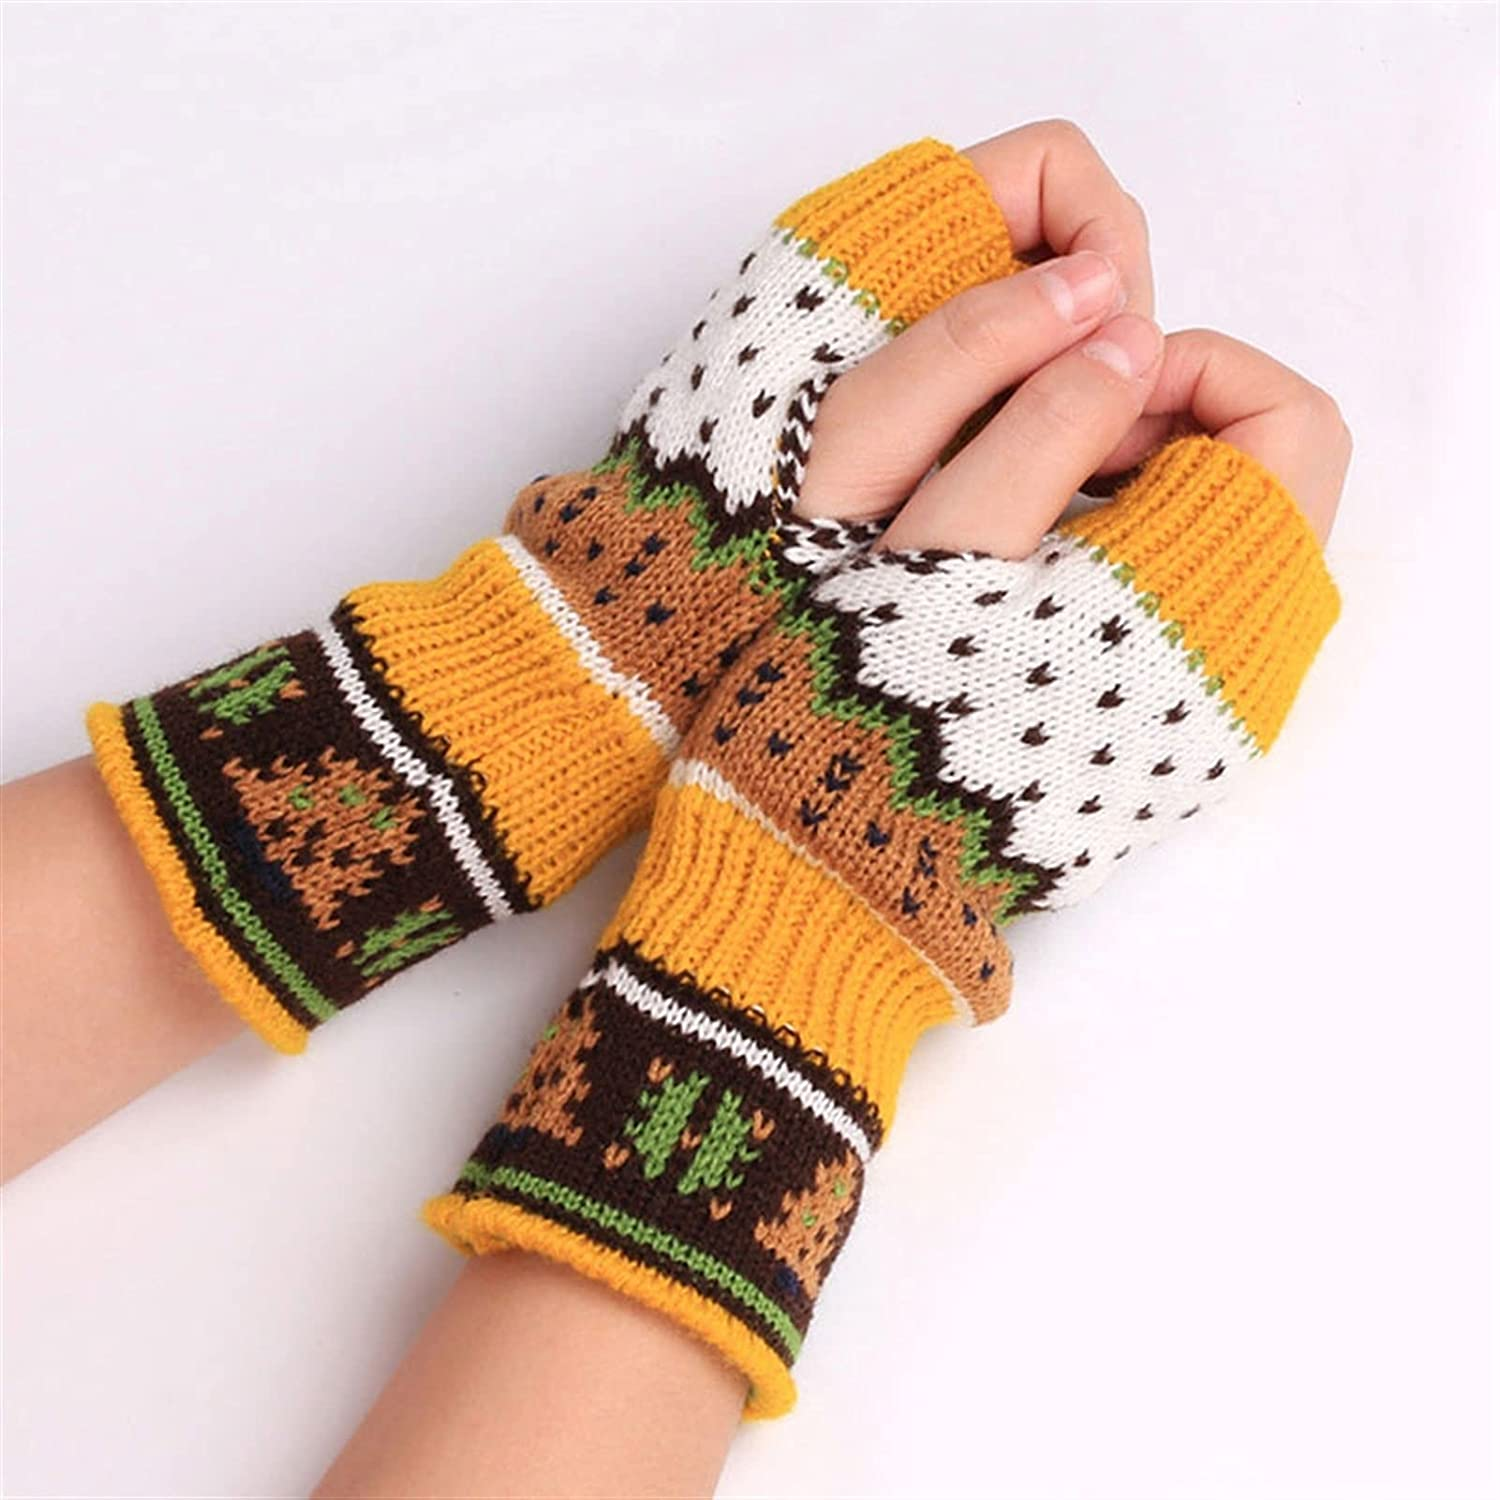 LUBINGT Winter Gloves Fashion Women Arm Warmers Winter Fingerless Gloves Christmas Knitted Mittens Unisex Soft Warm Long Casual Gloves (Color : Yellow, Gloves Size : One Size)